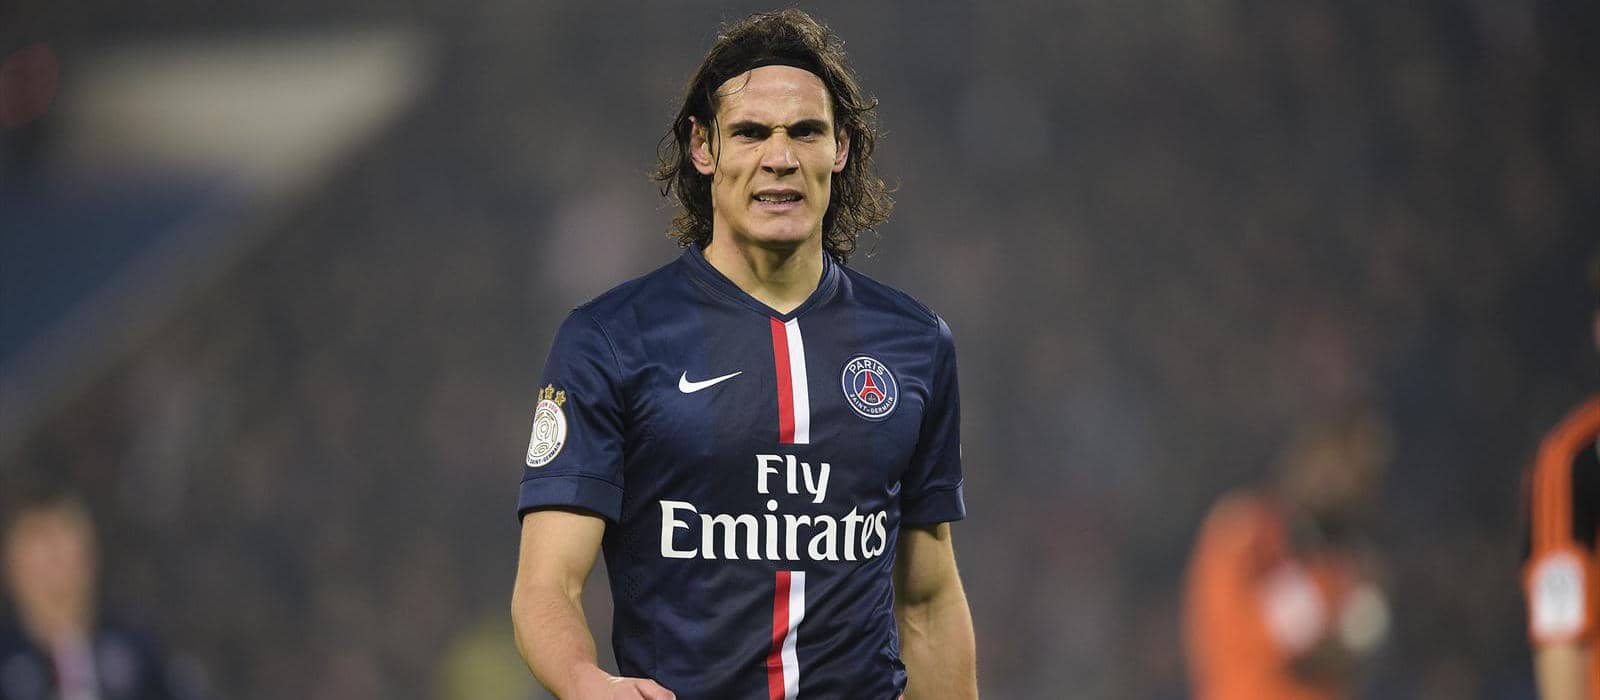 Edinson Cavani injured ahead of clash with Manchester United: report